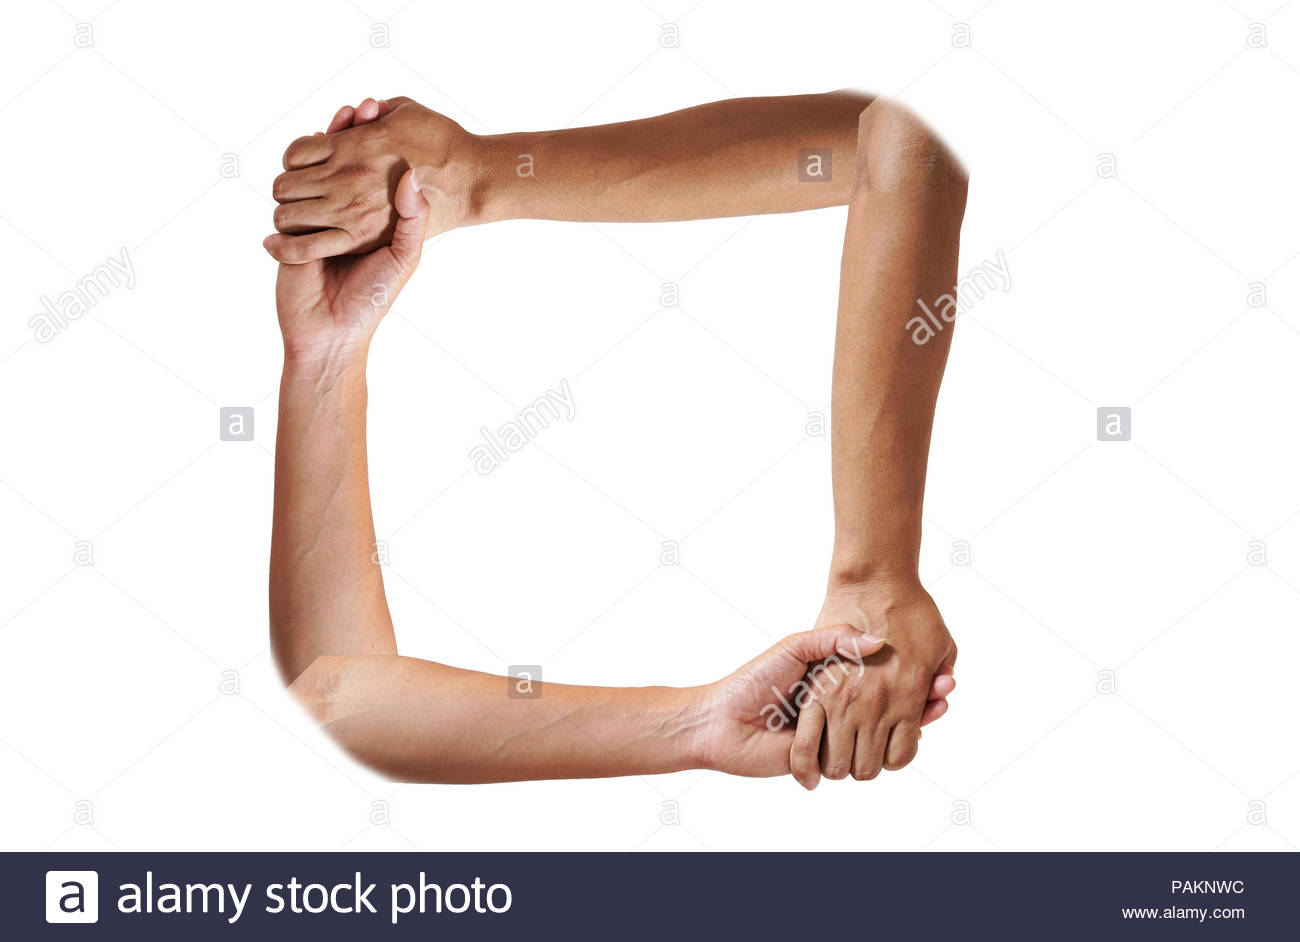 Frame Gesture Stock Photos & Frame Gesture Stock Images - Alamy